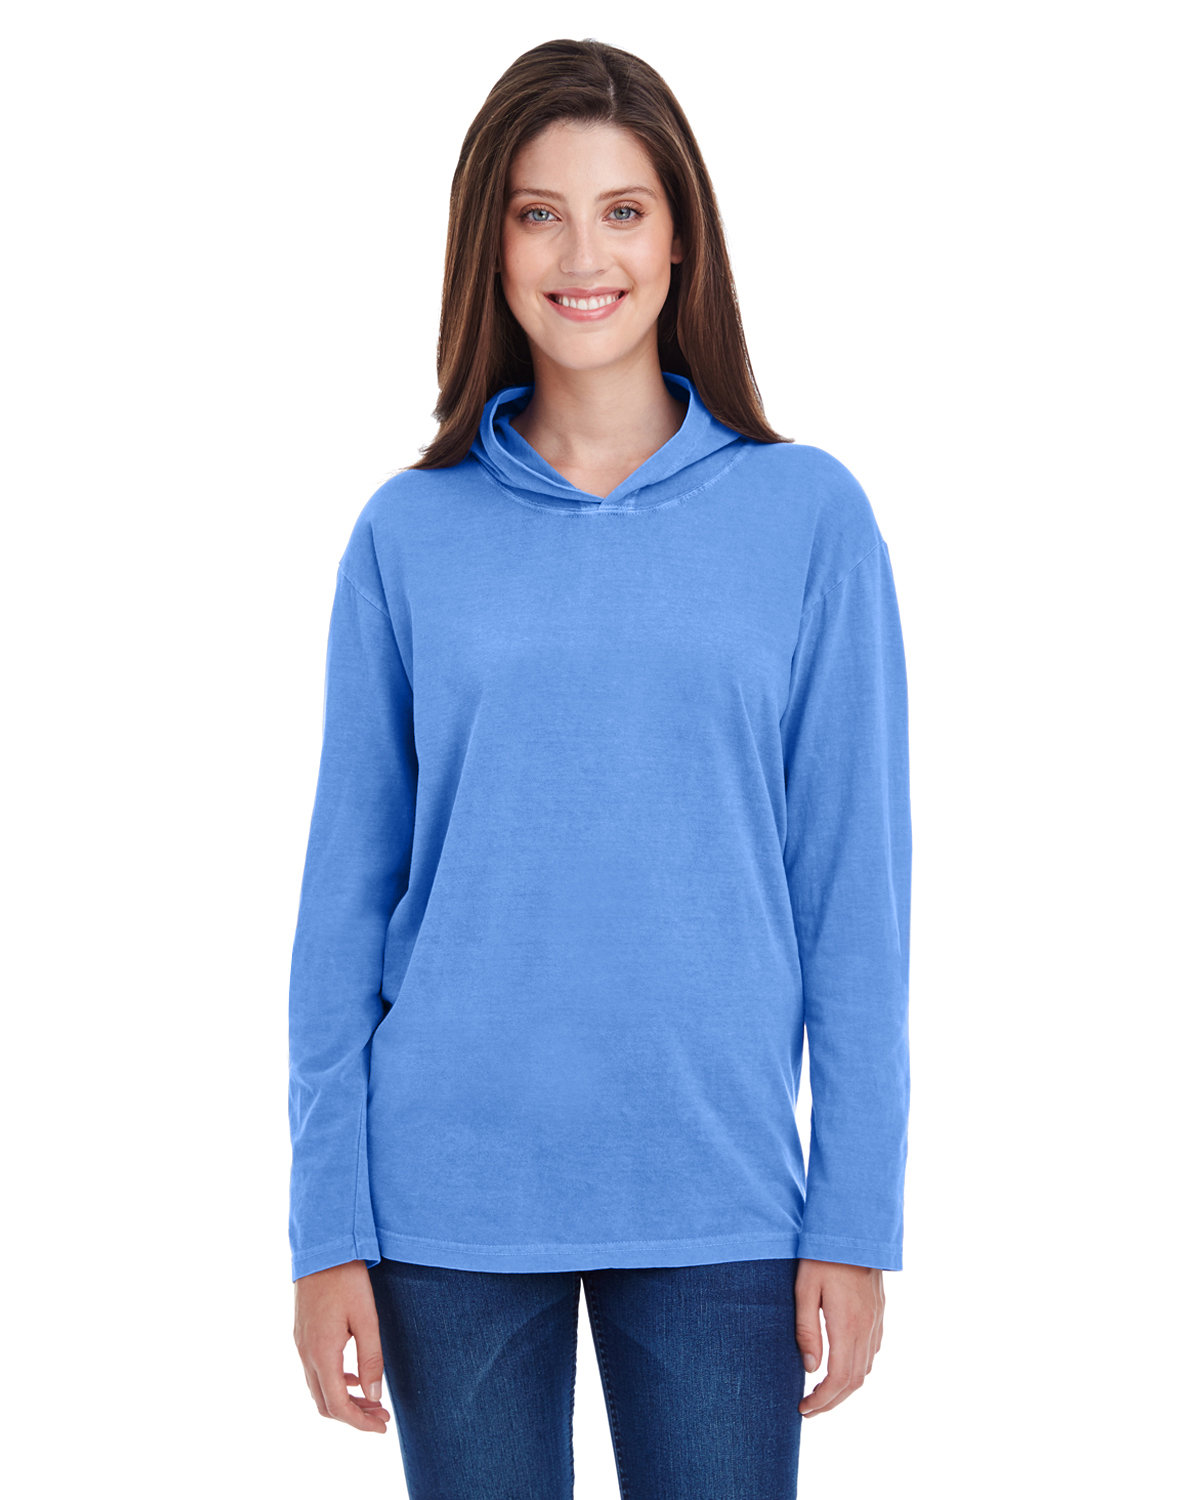 Comfort Colors Adult Heavyweight RS Long-Sleeve Hooded T-Shirt FLO BLUE